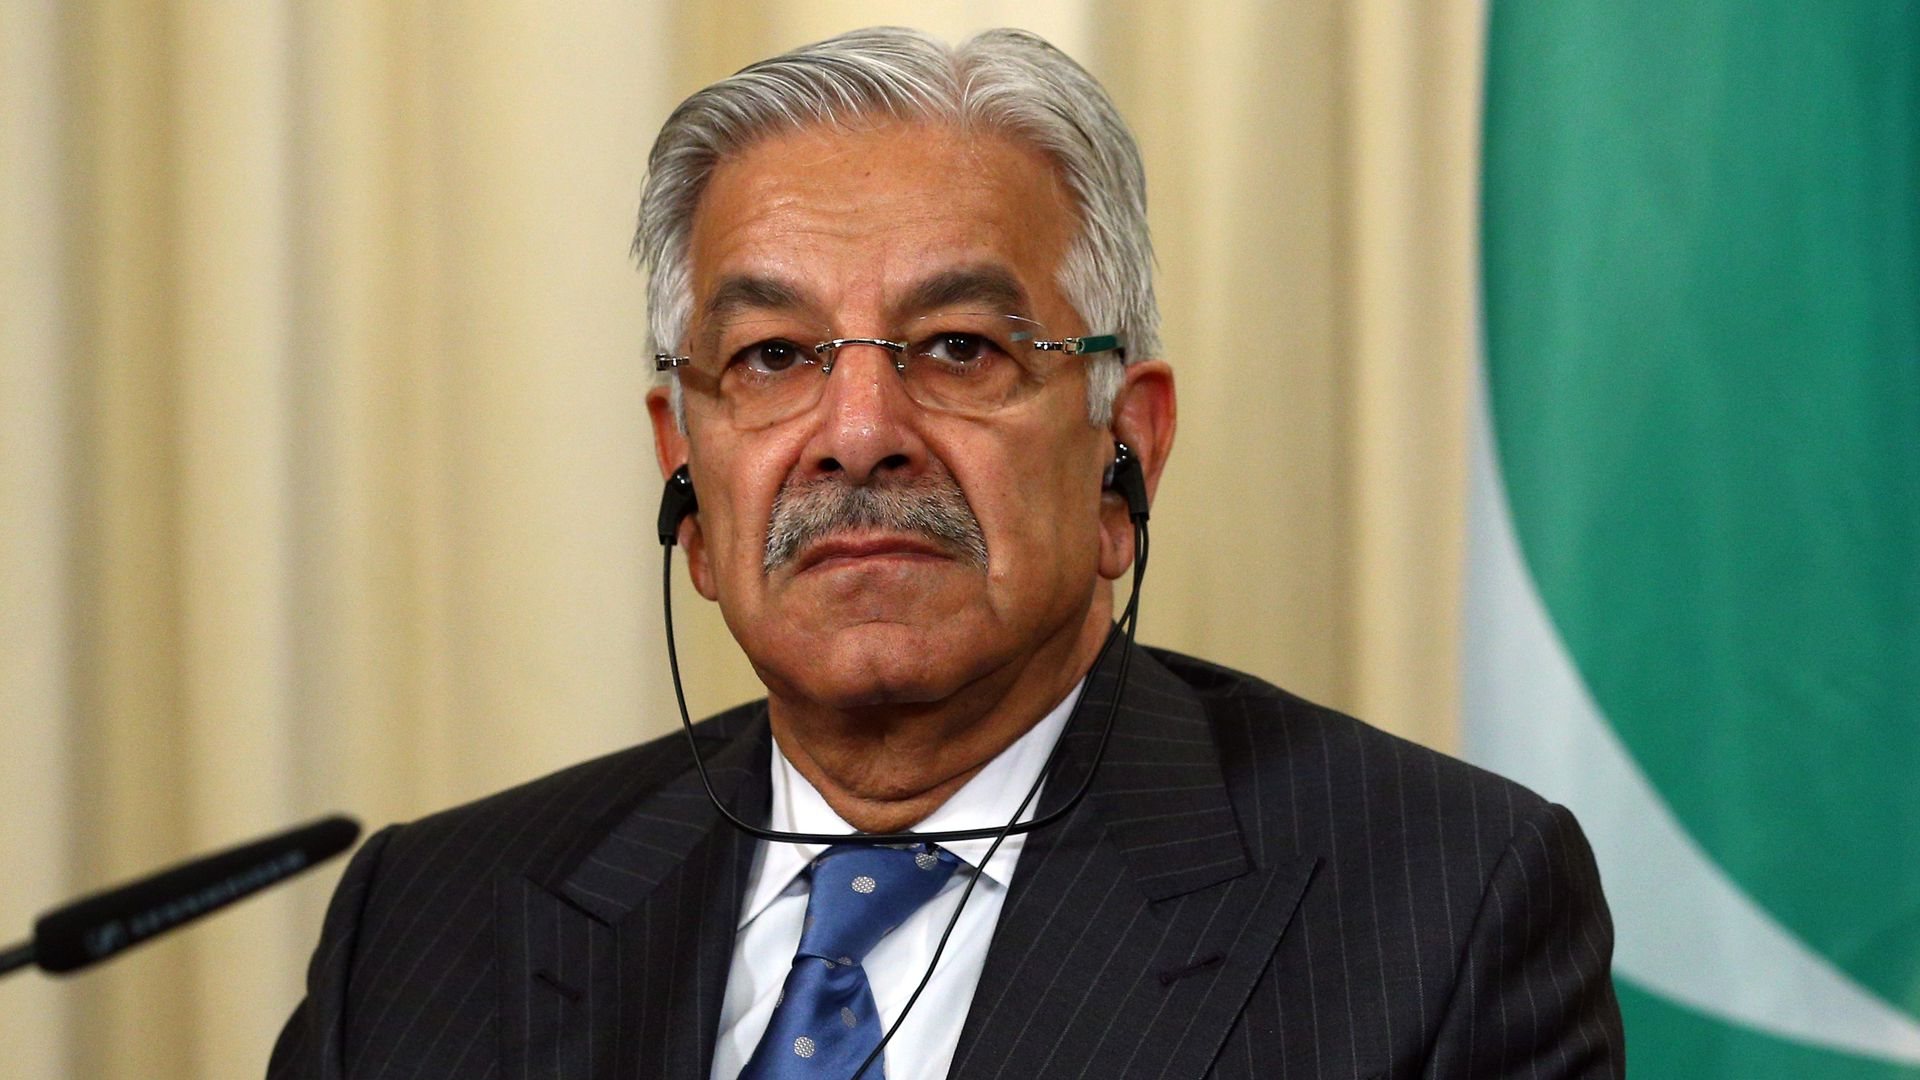 Pakistan's foreign minister